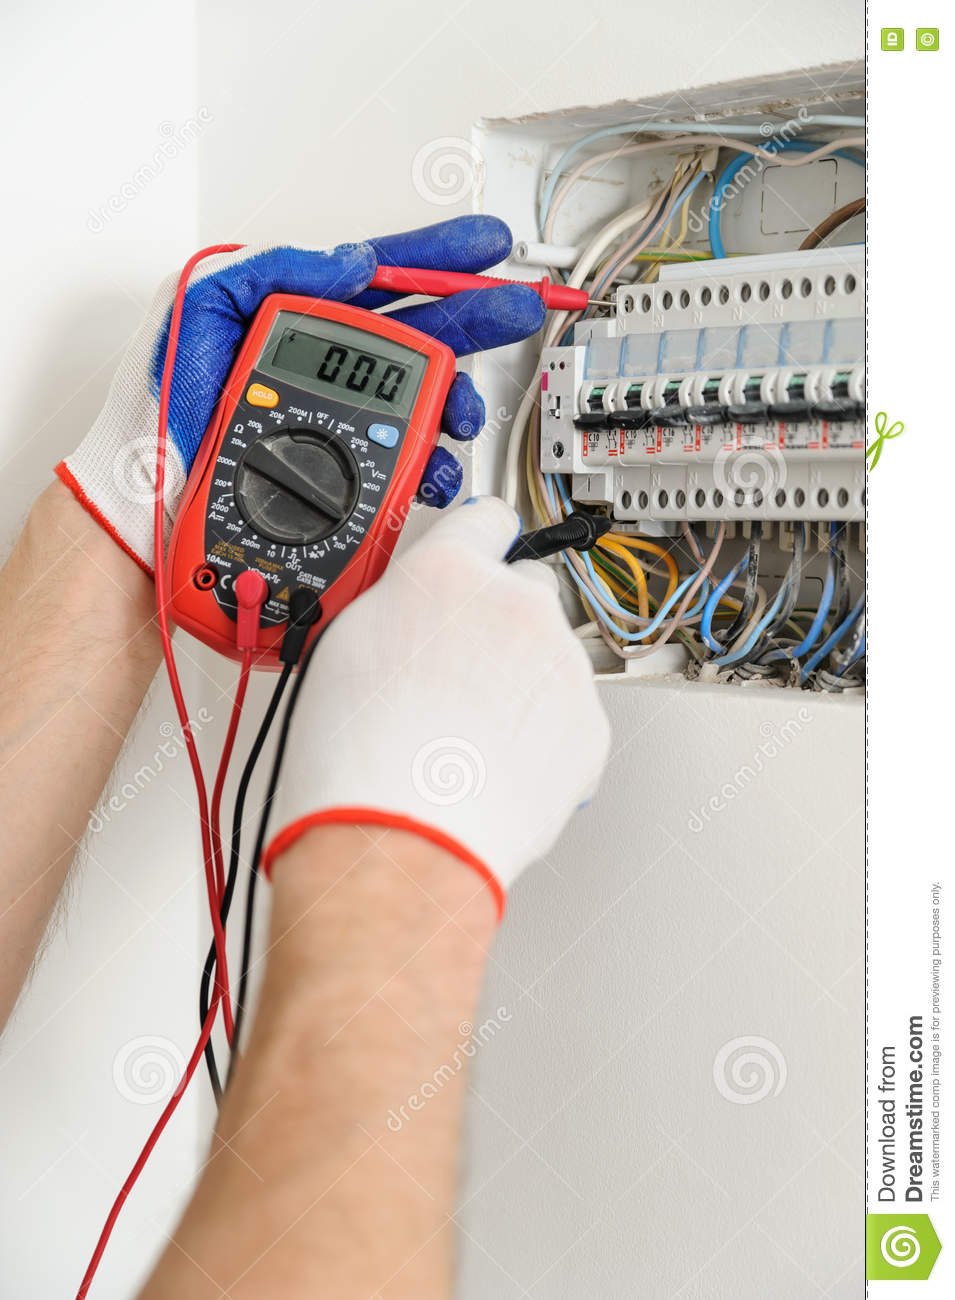 electrician check voltage electrical fuse box multimeter 74989274 electrician check voltage in electrical fuse box stock photo how to check fuse box with multimeter at gsmx.co